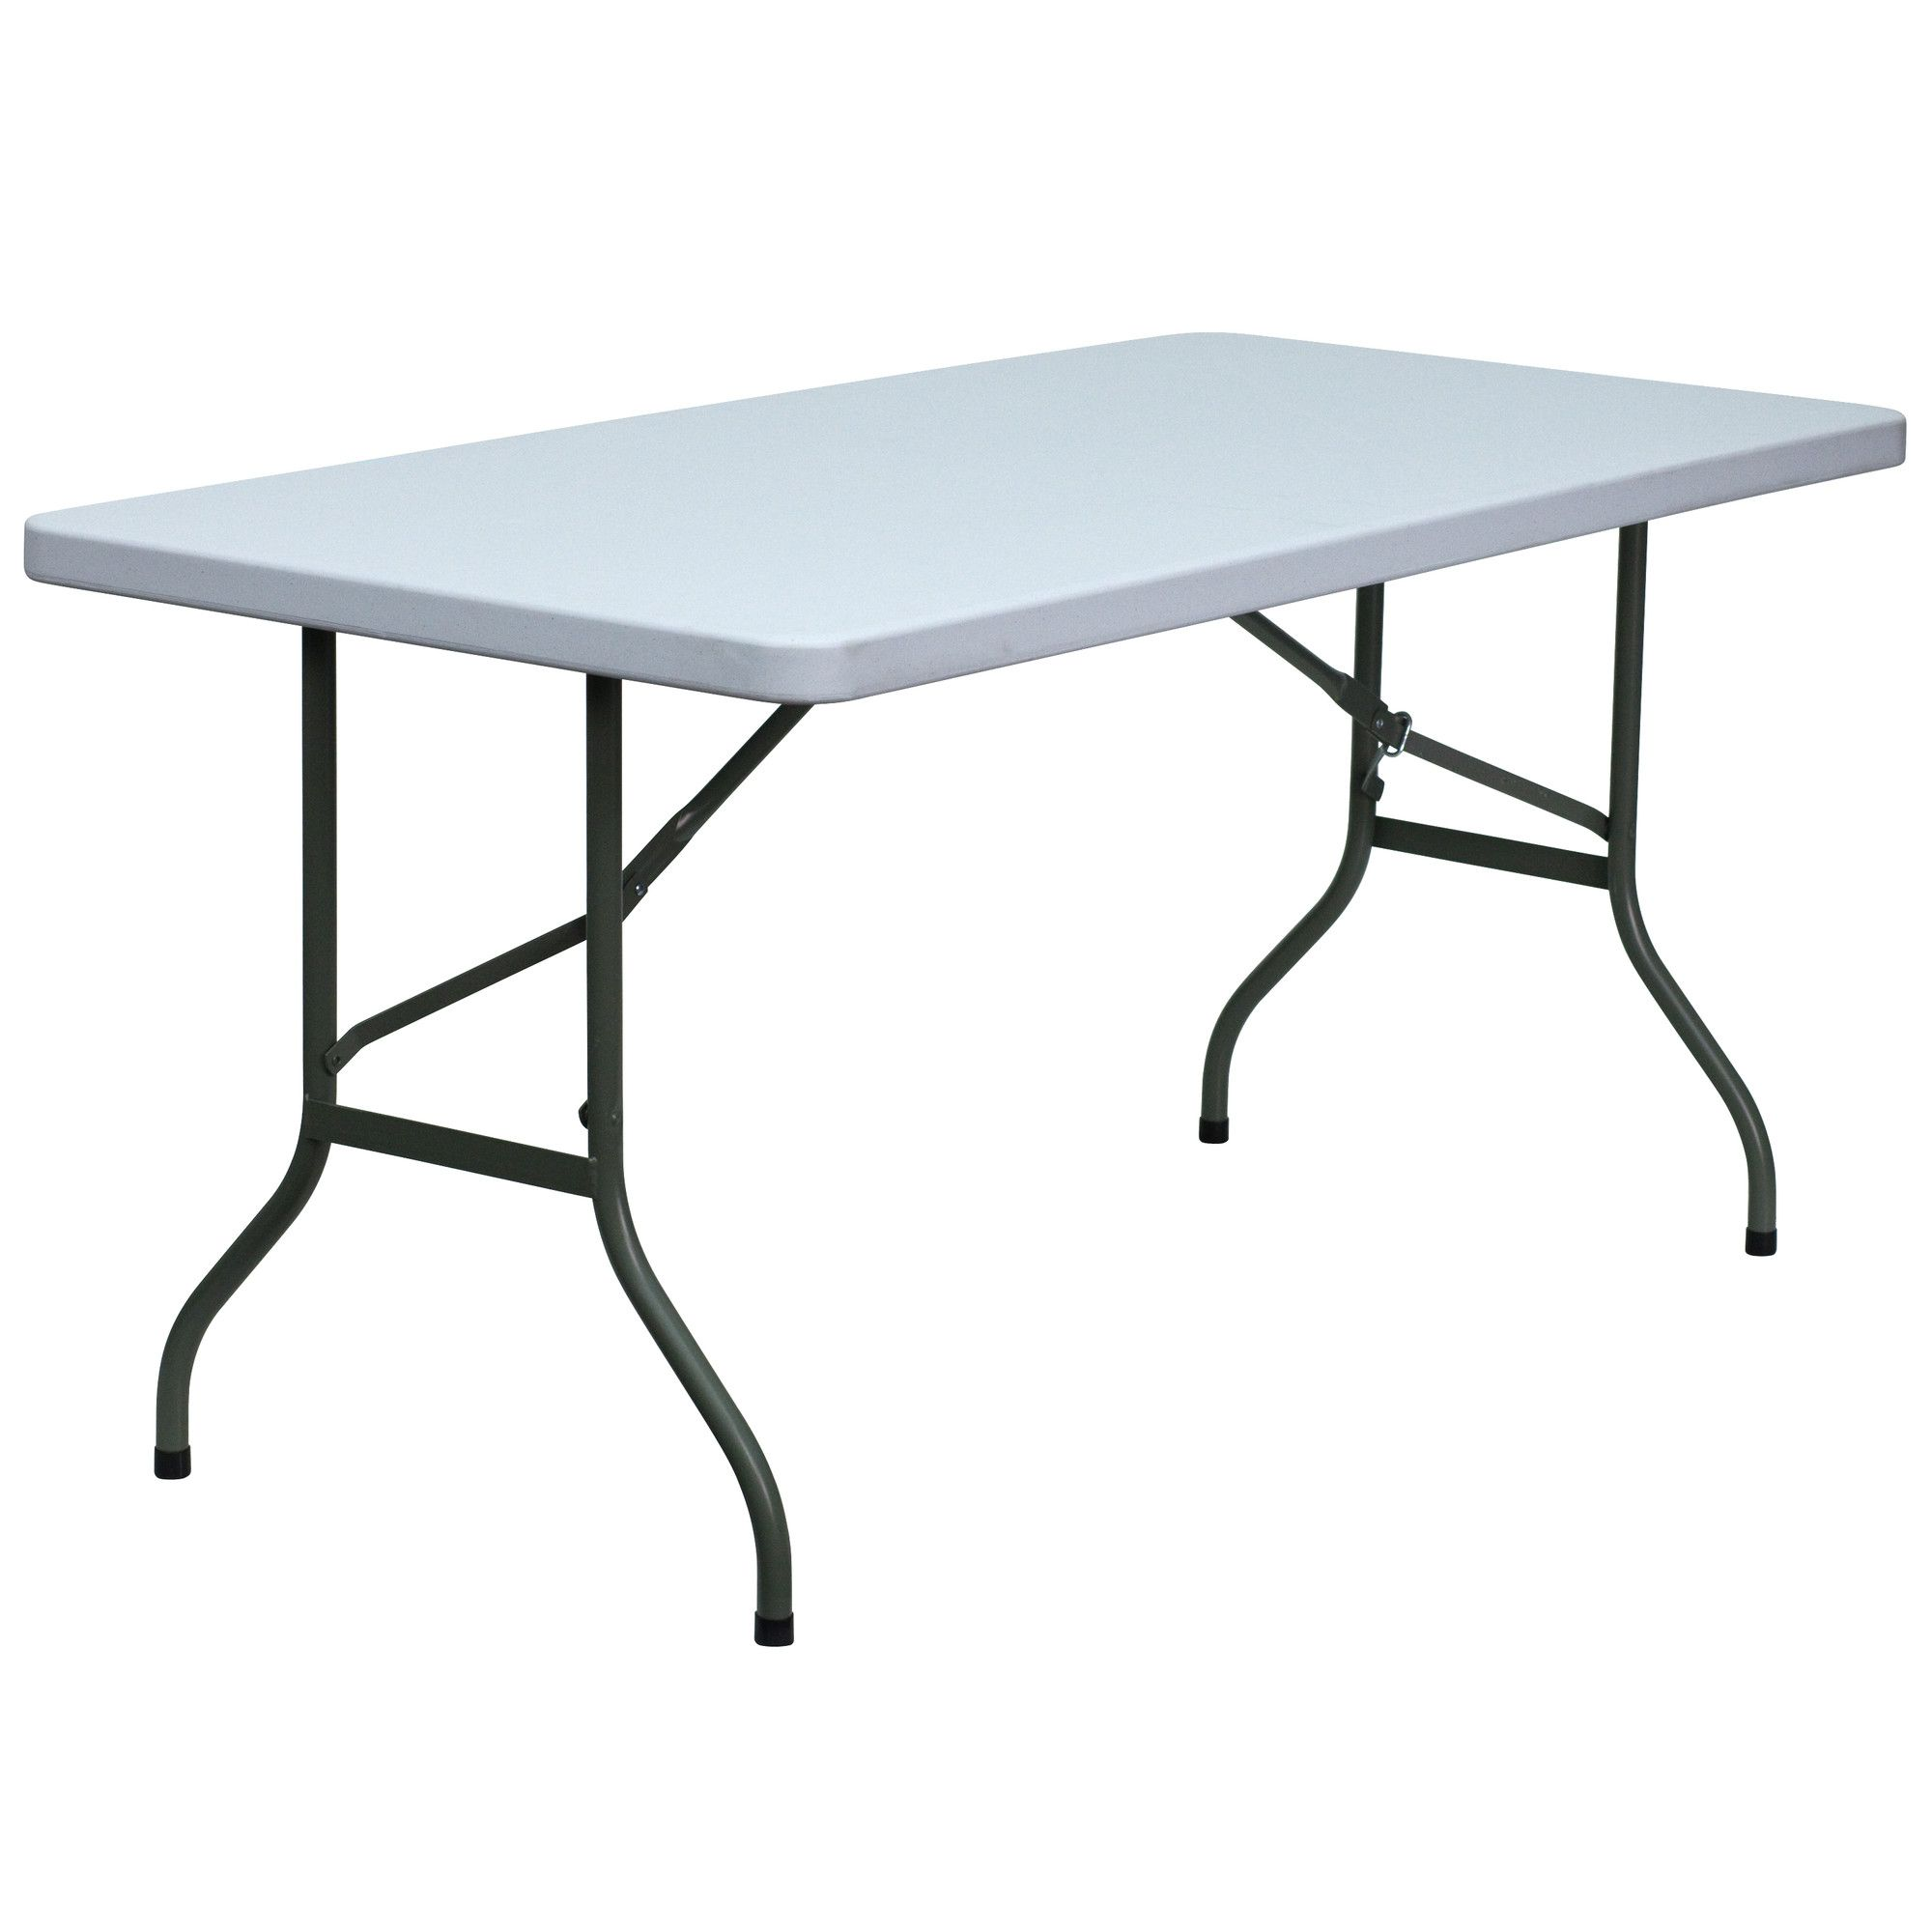 60 Rectangular Folding Table Furniture White Table Top Table